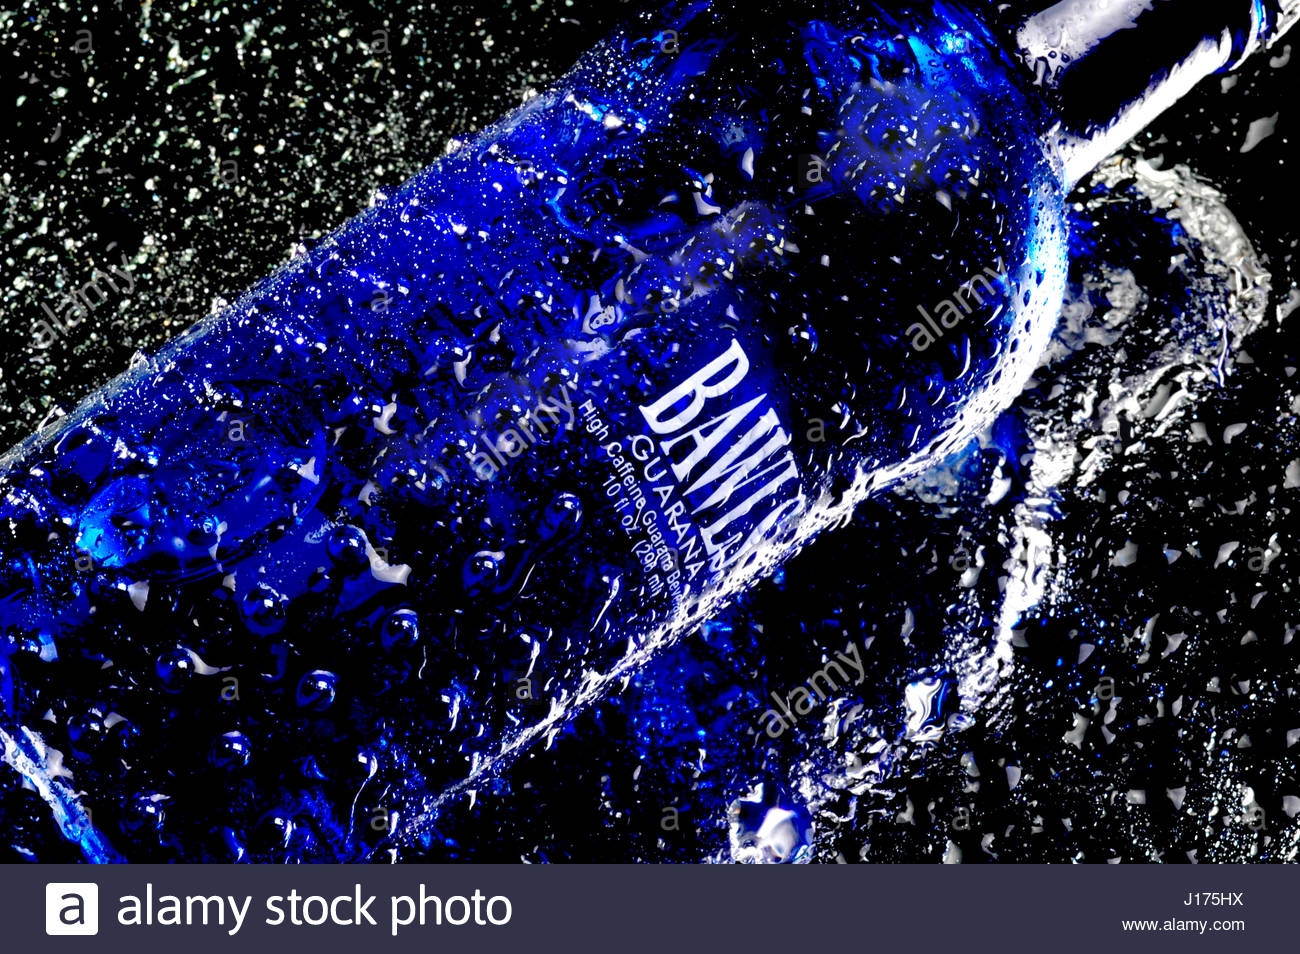 Bawls Energy Drink Stock Photos Bawls Energy Drink Stock Images 1300x954